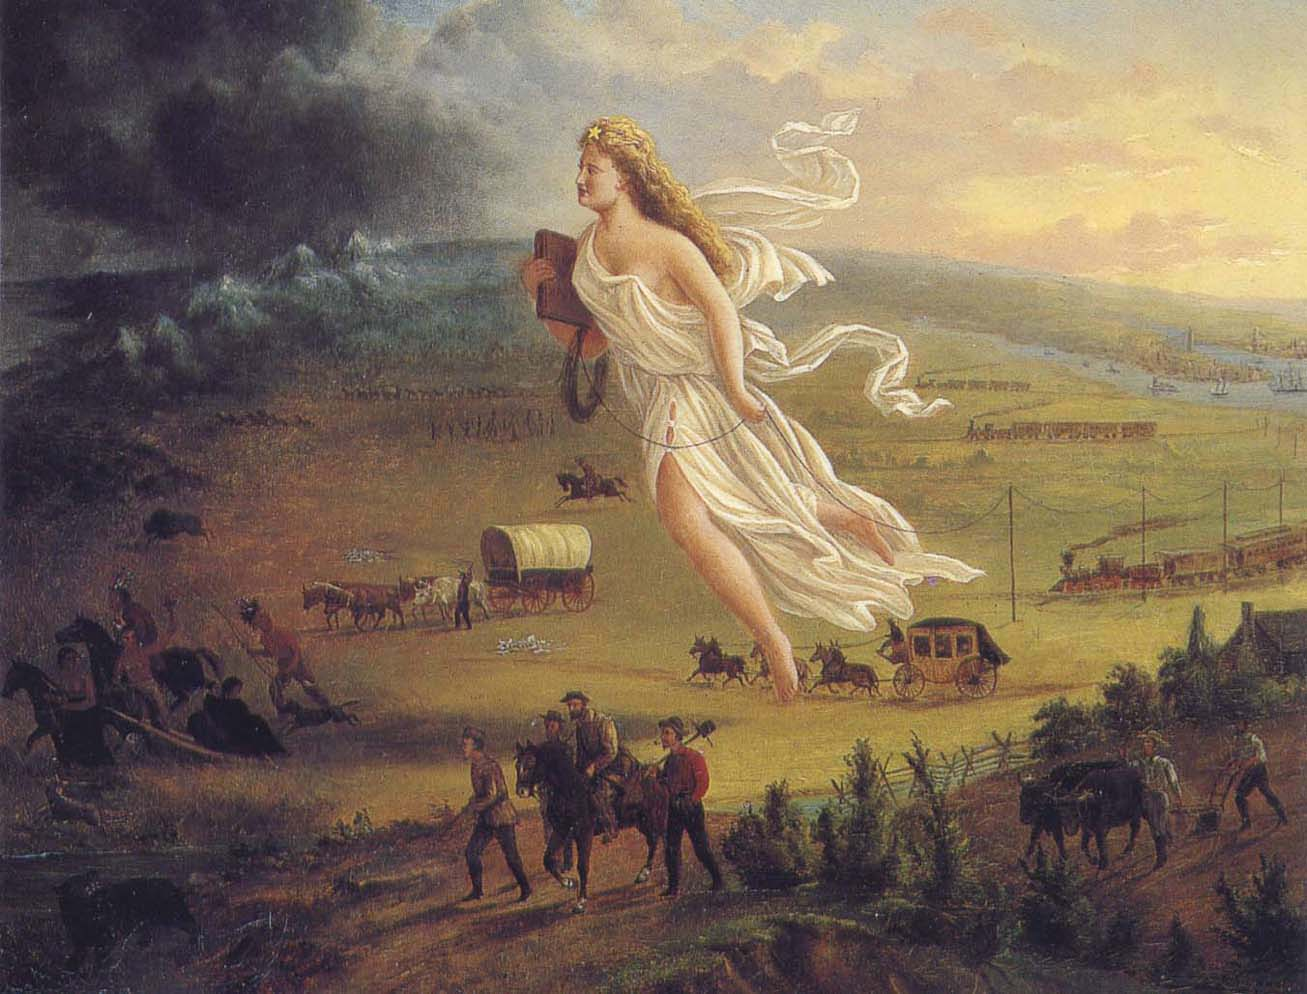 """""""American Progress"""" By John Gast (painter) (scan or photograph of 1872 painting) [Public domain], via Wikimedia Commons"""